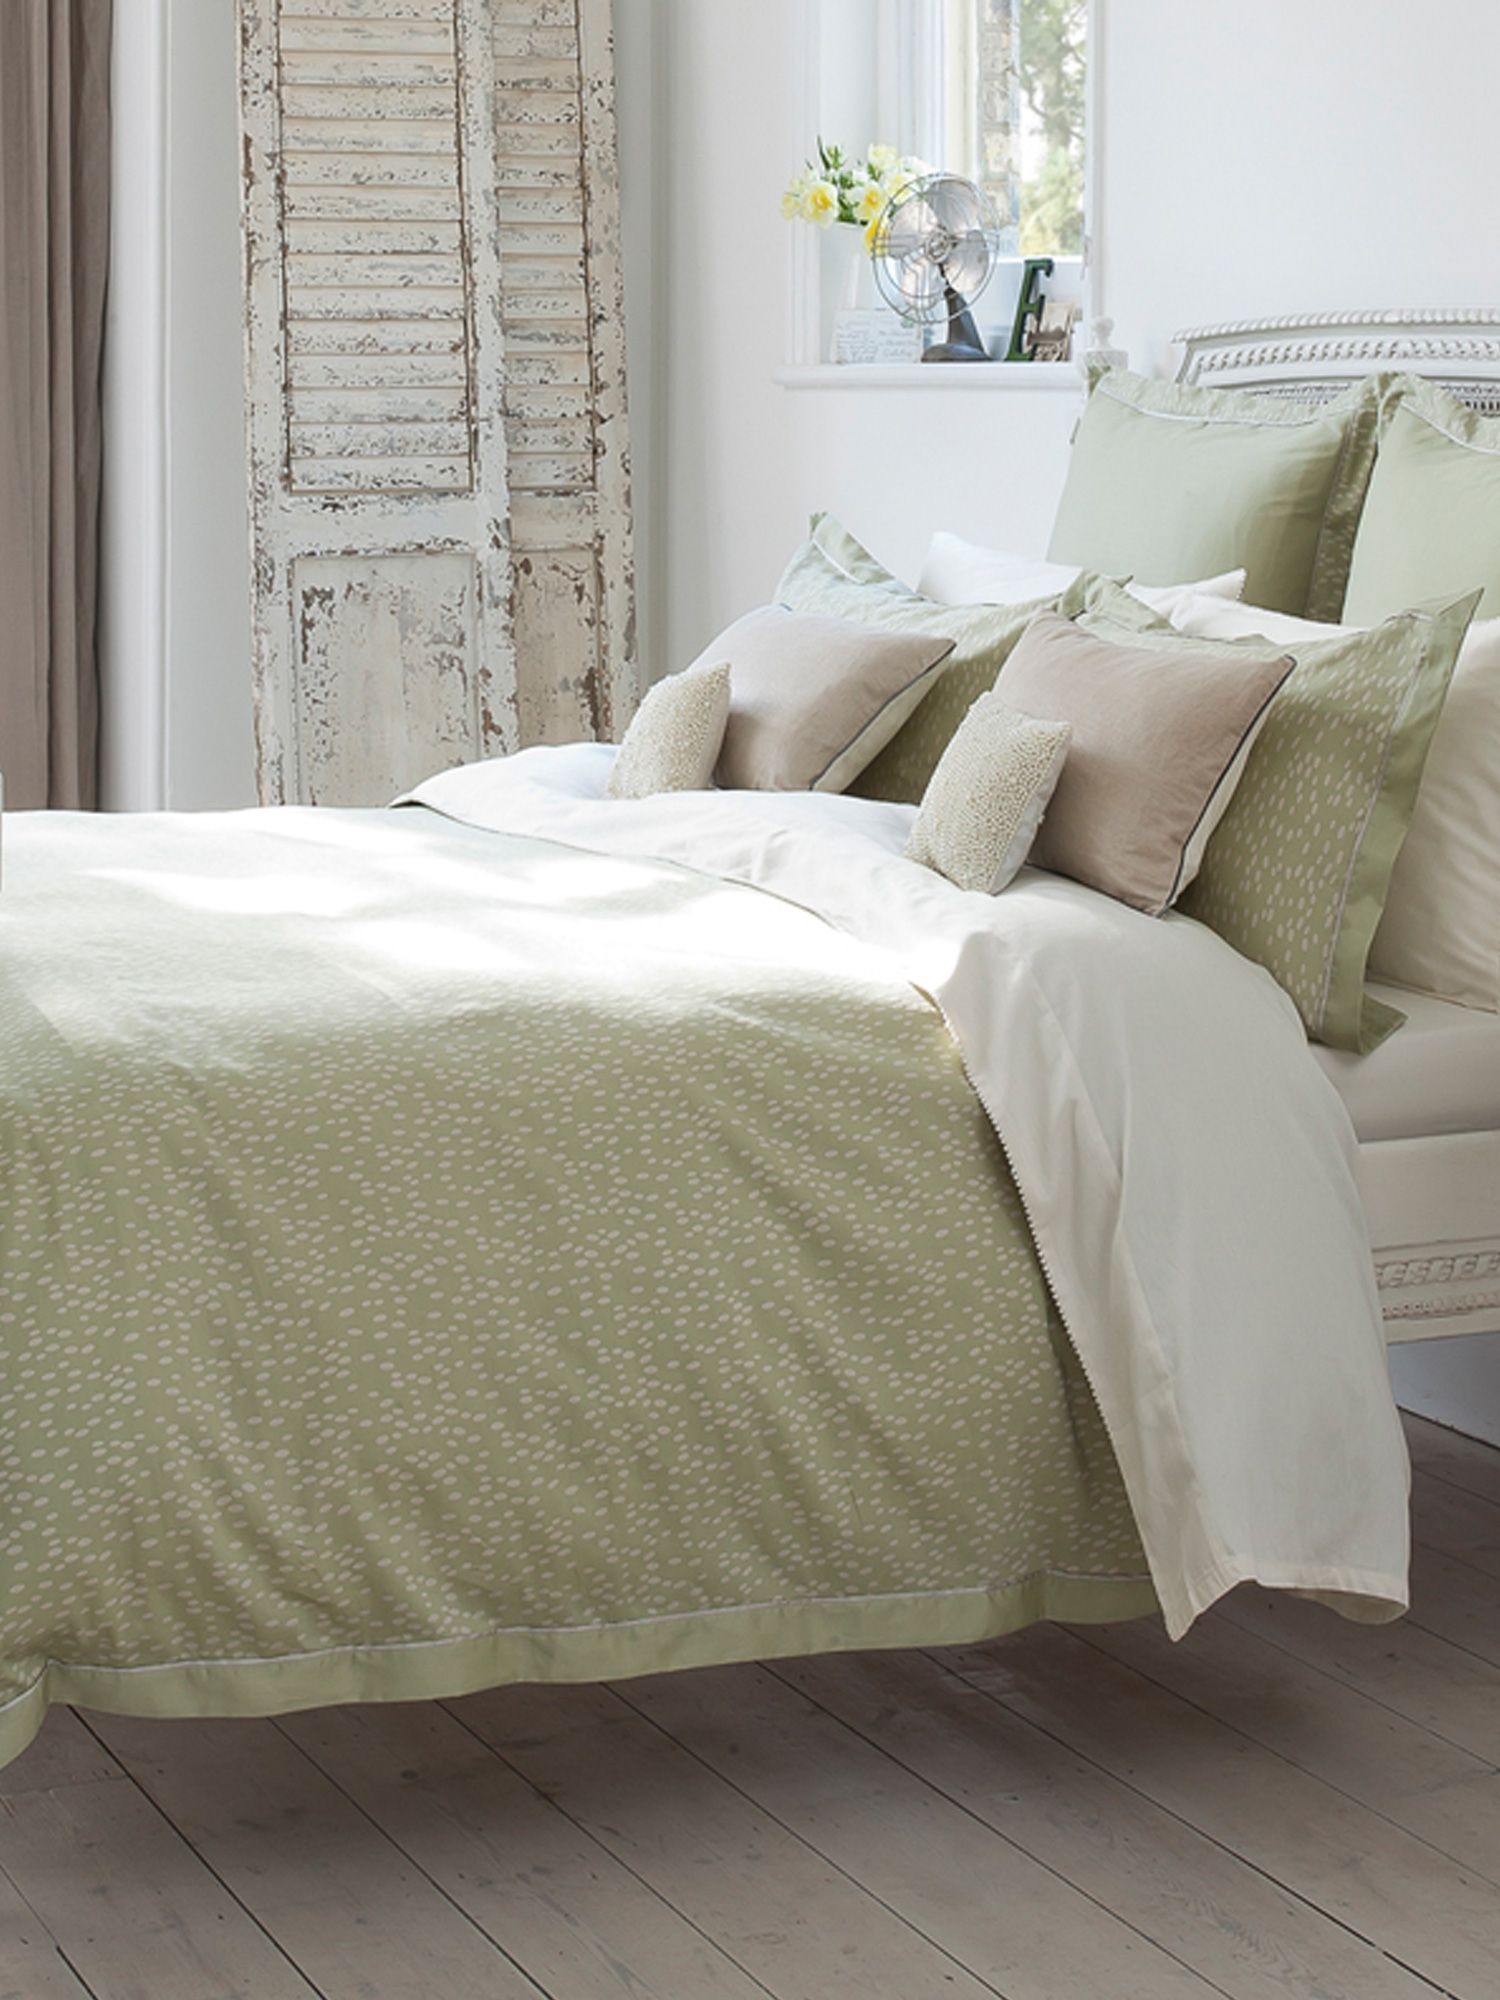 Evelyn bed linen range in sage green